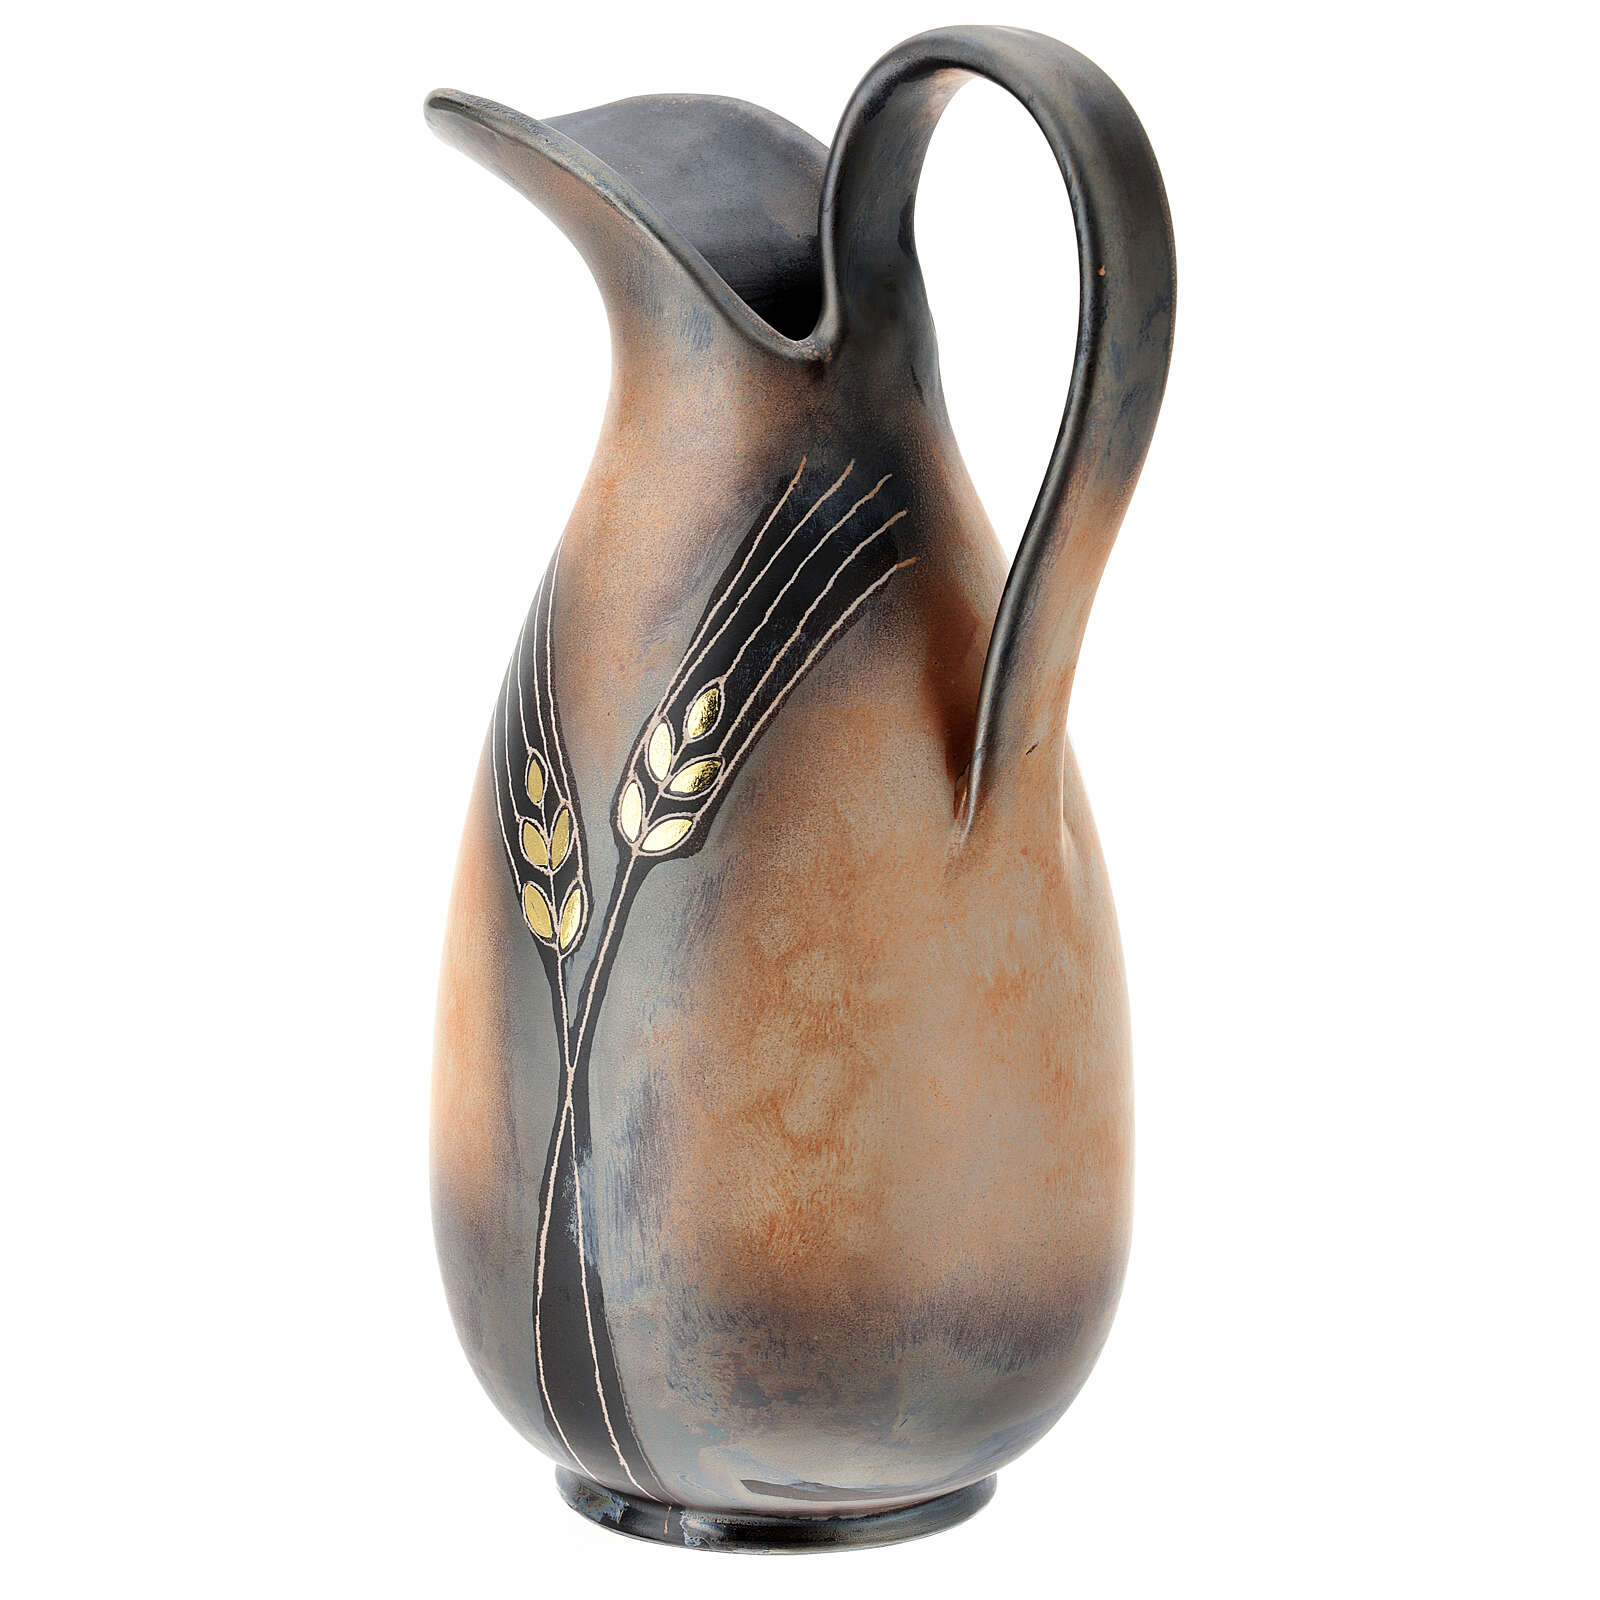 Ewer with golden ear of wheat pattern, Pompei ceramic, h 32 cm 3